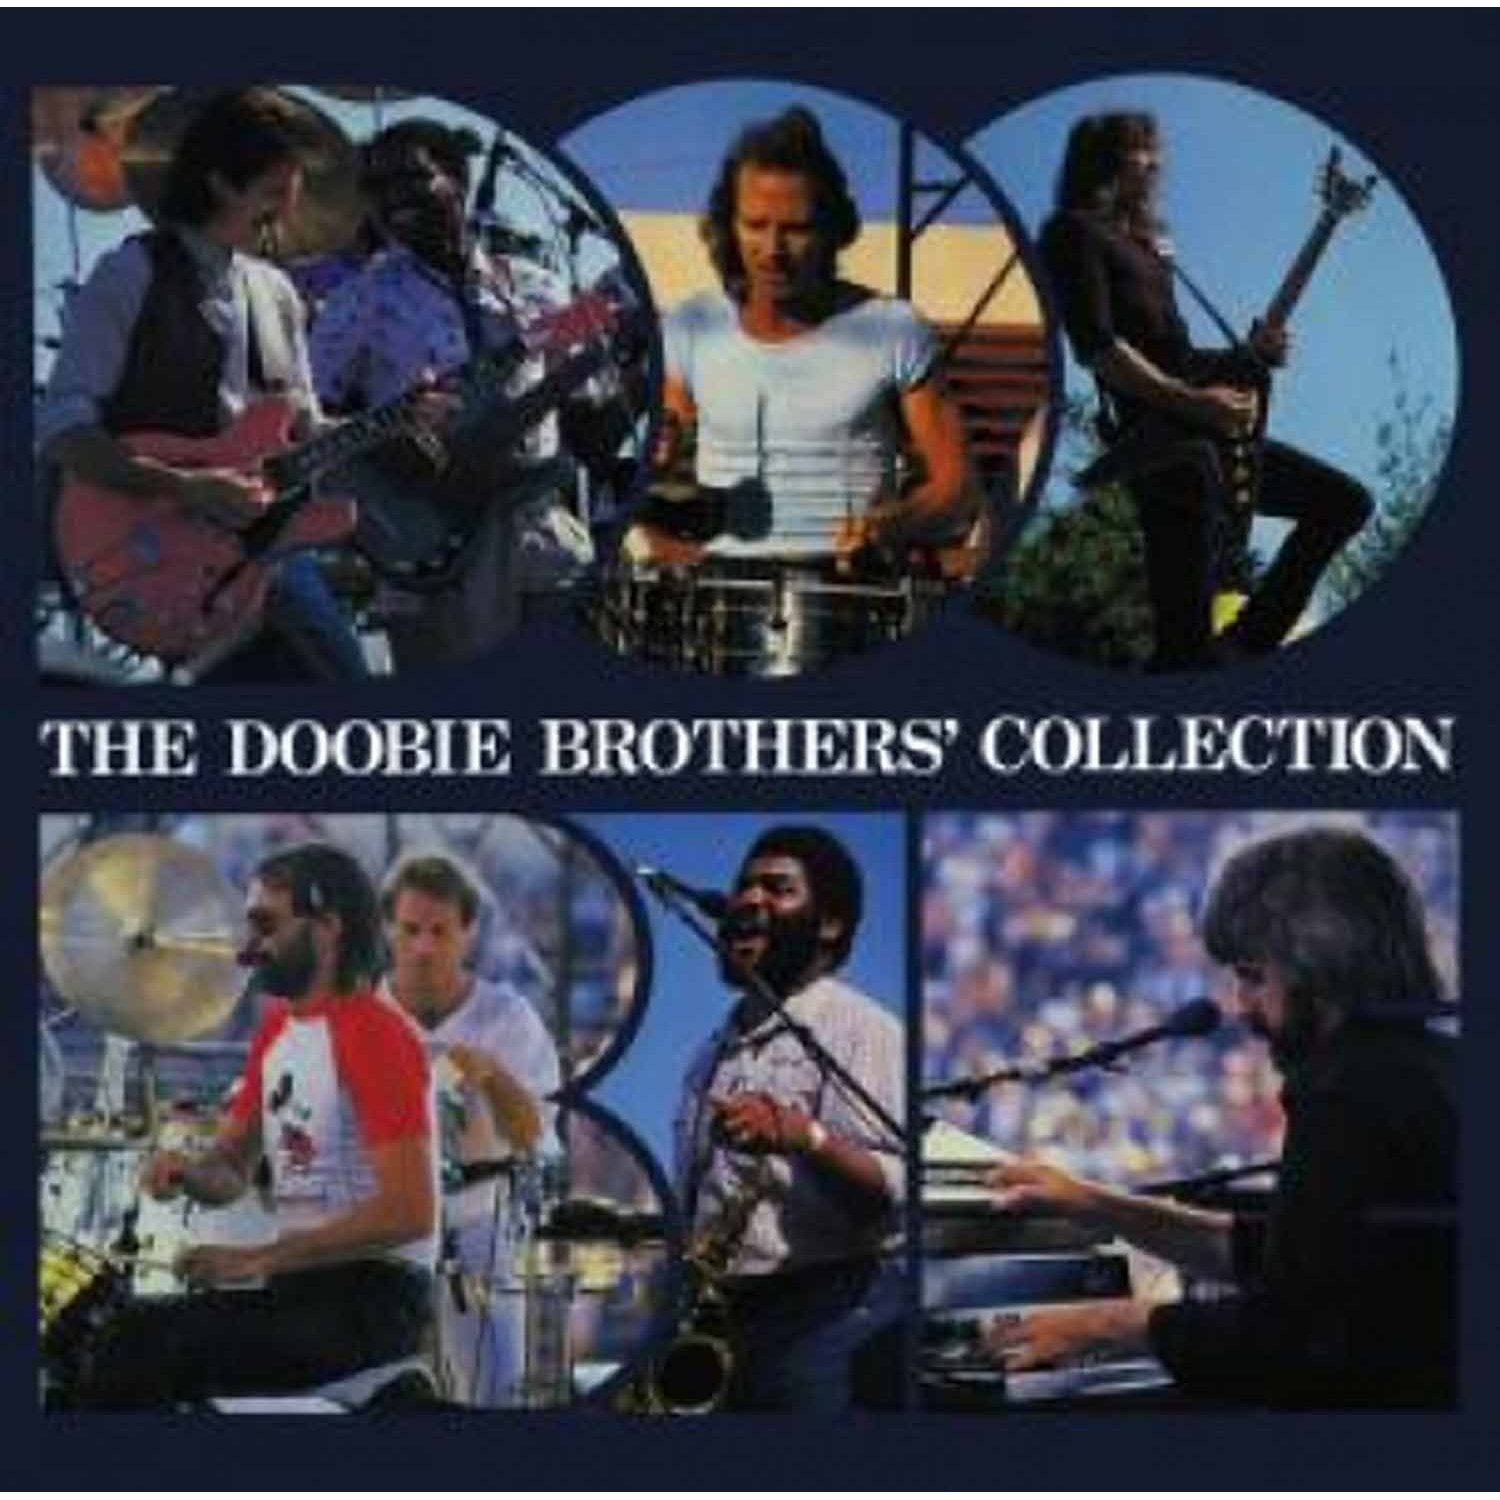 The Doobie Brothers Collection.jpg